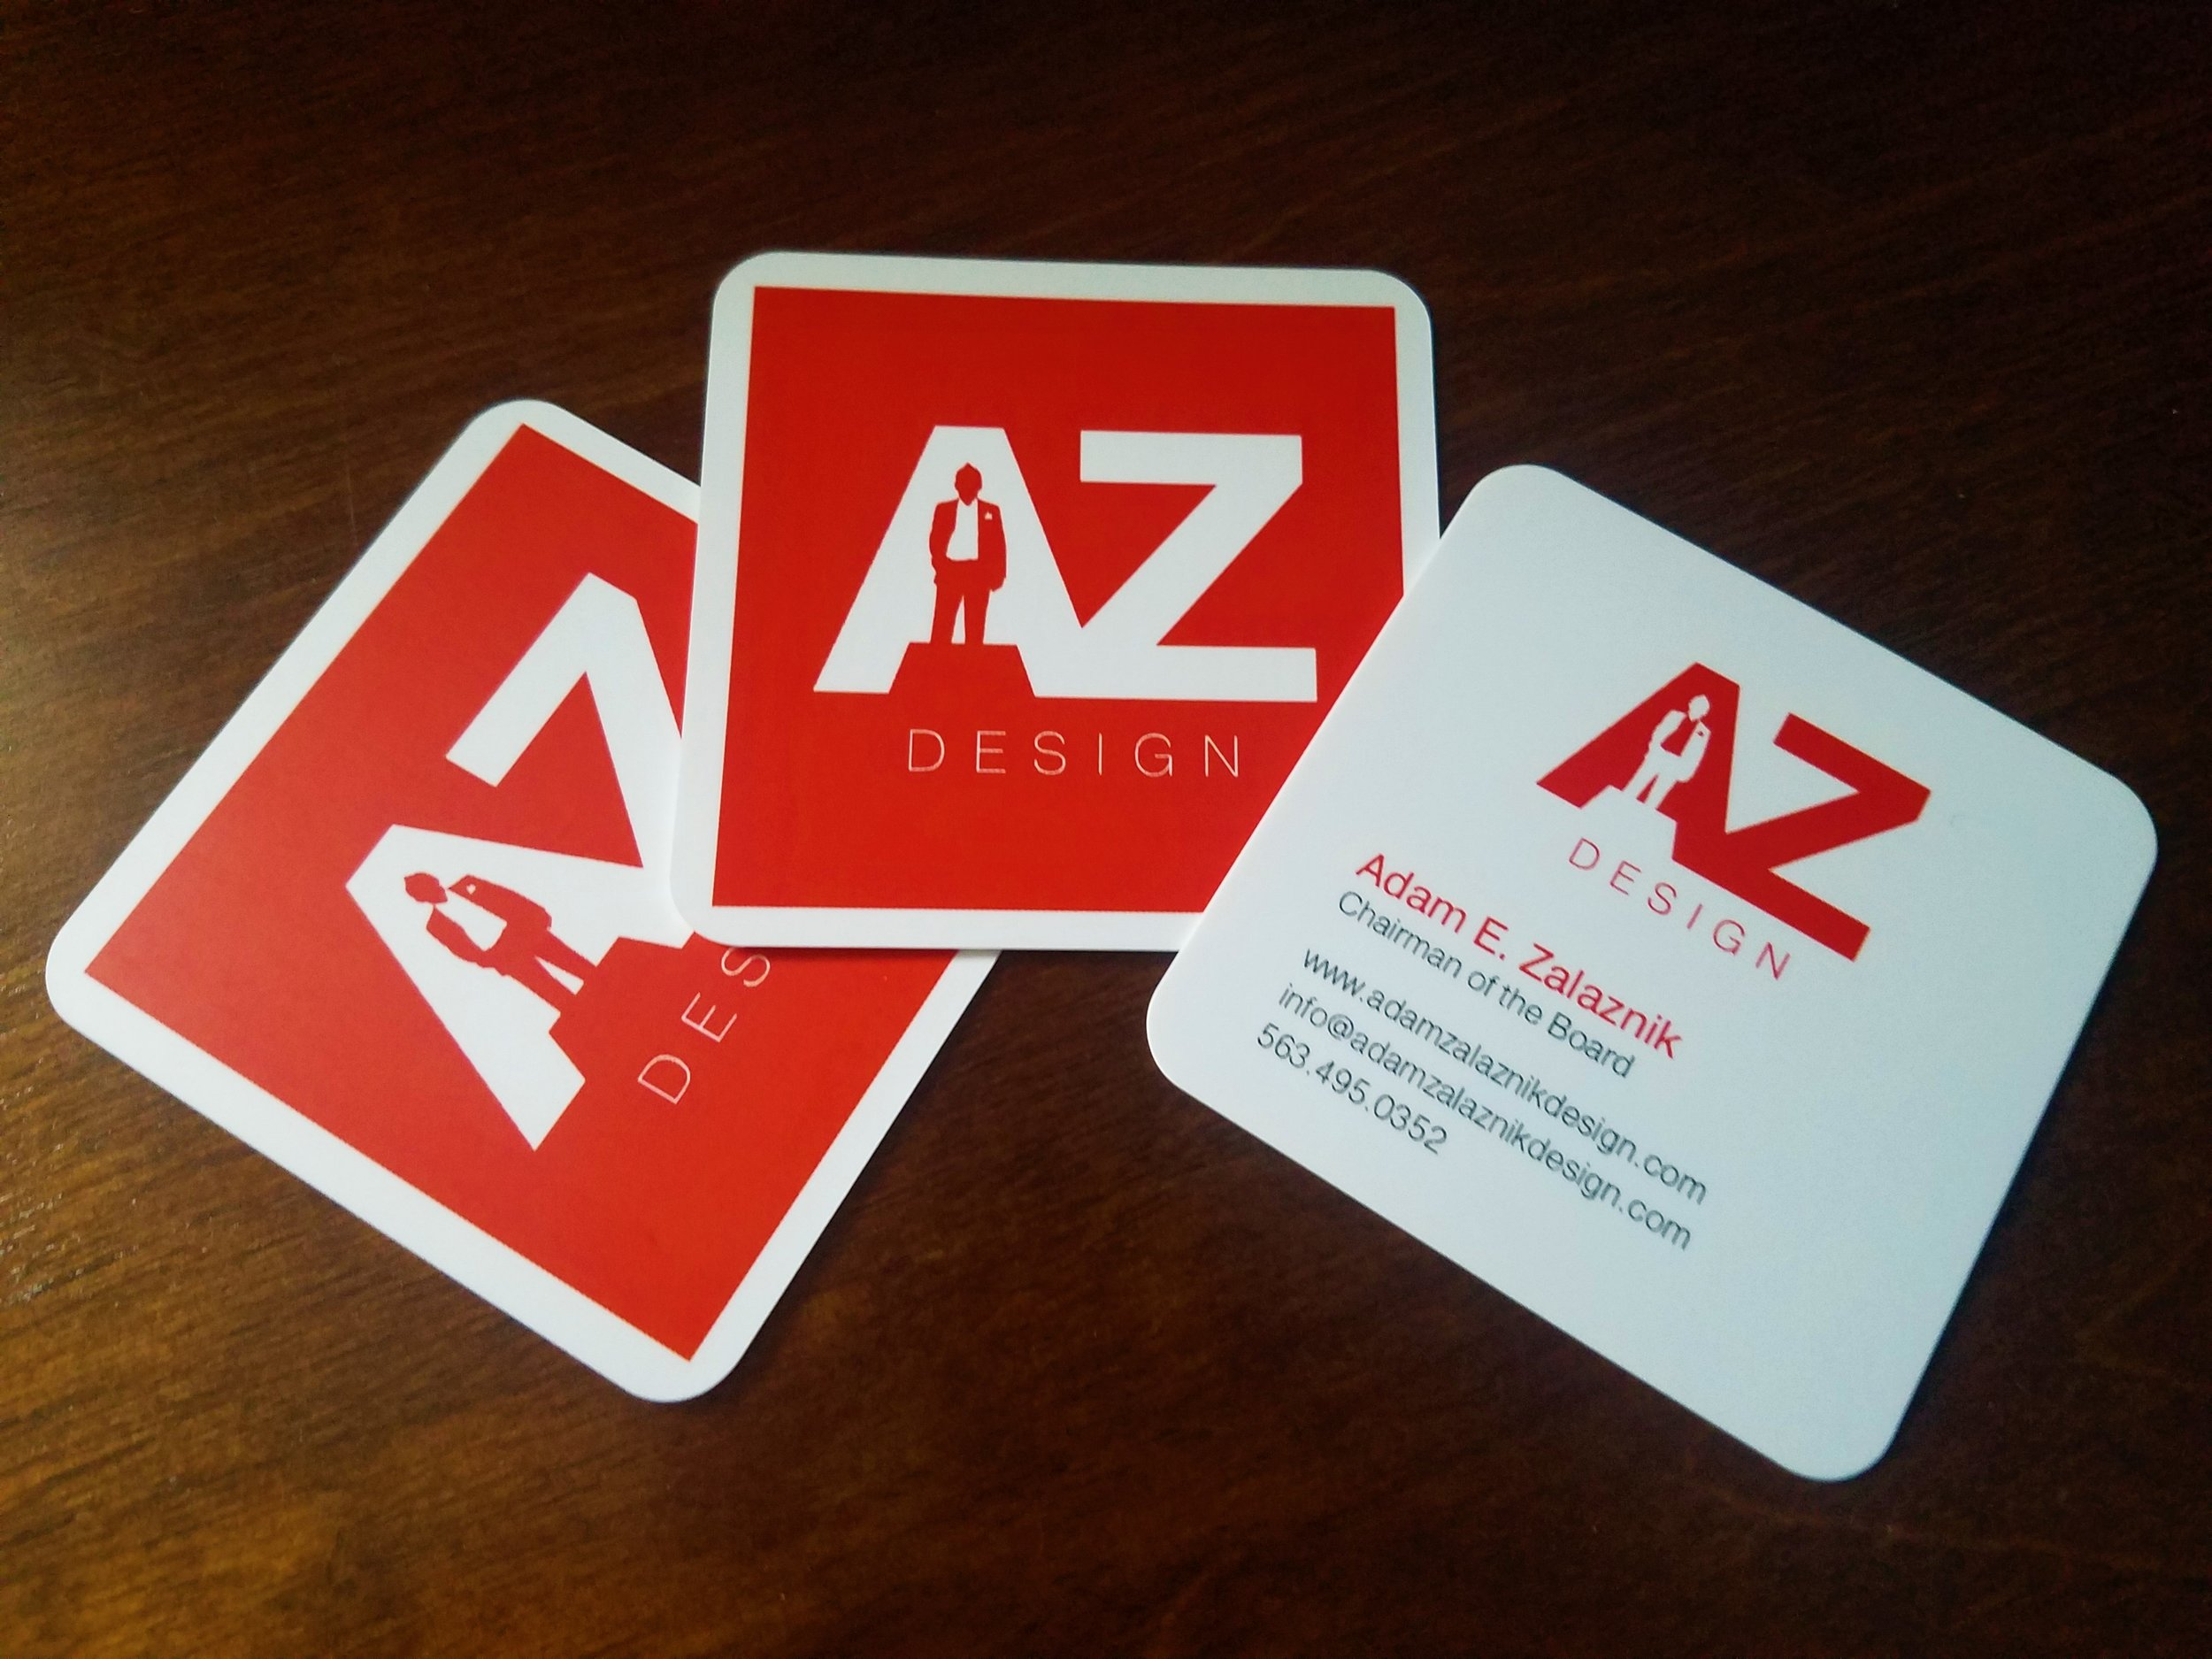 adam zalaznik business card